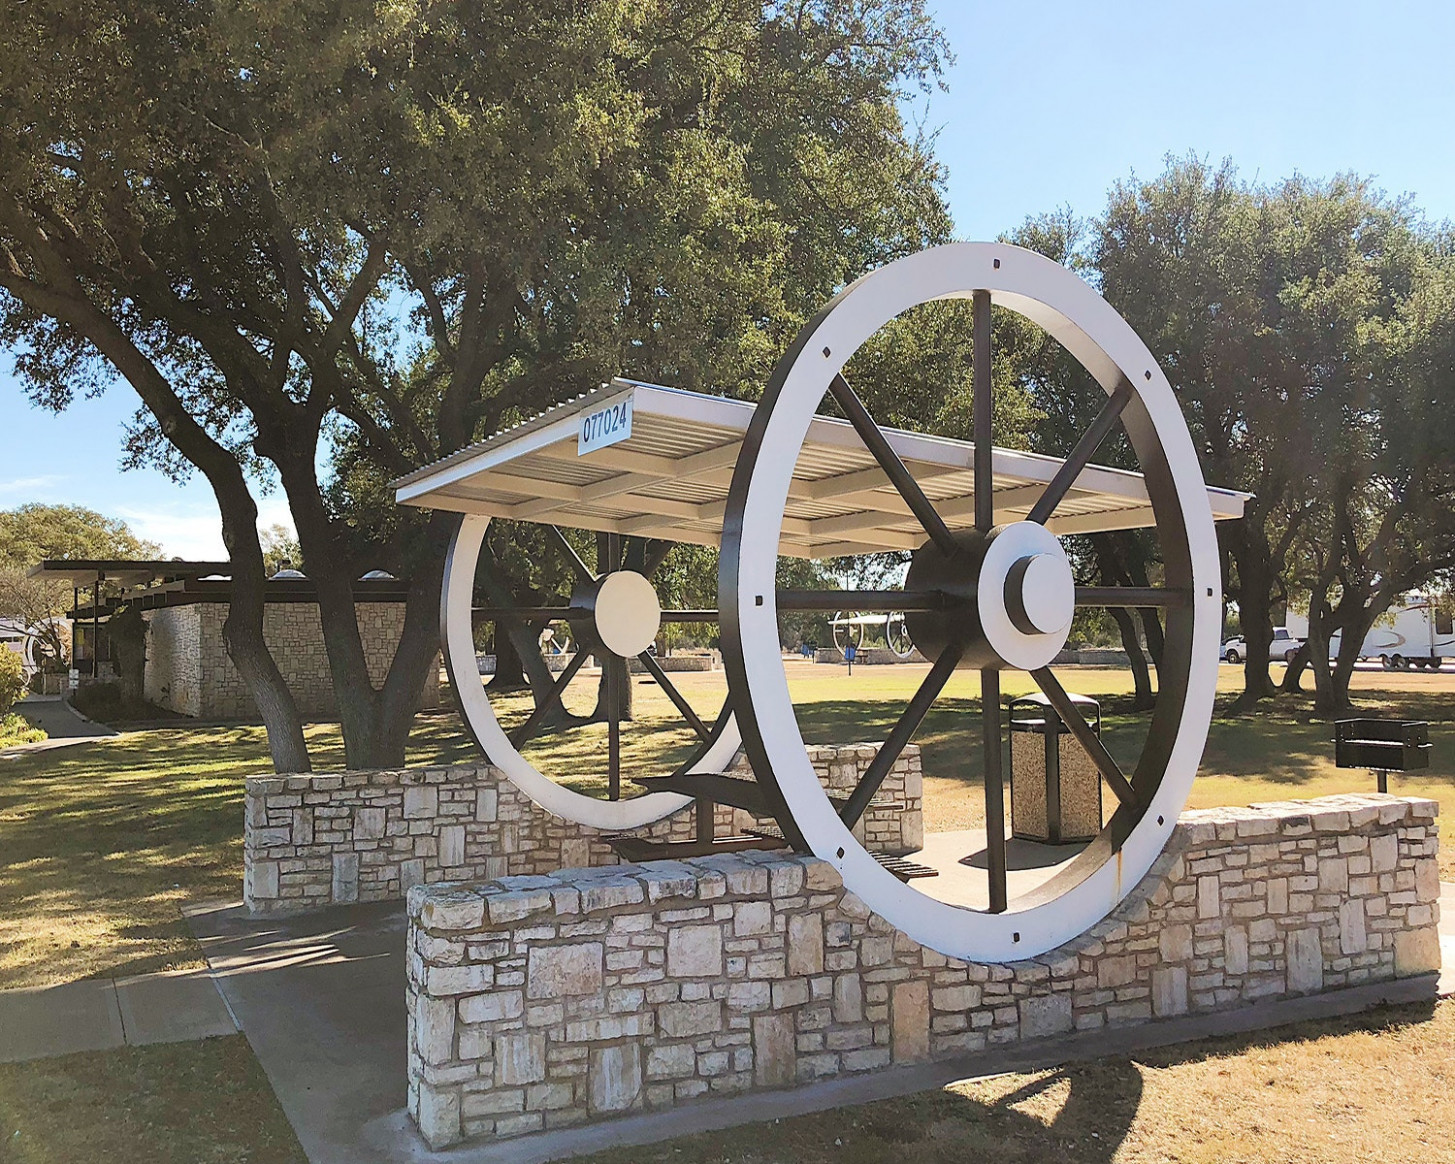 Texas District Visit – Third Way Carports Minimalist Texas